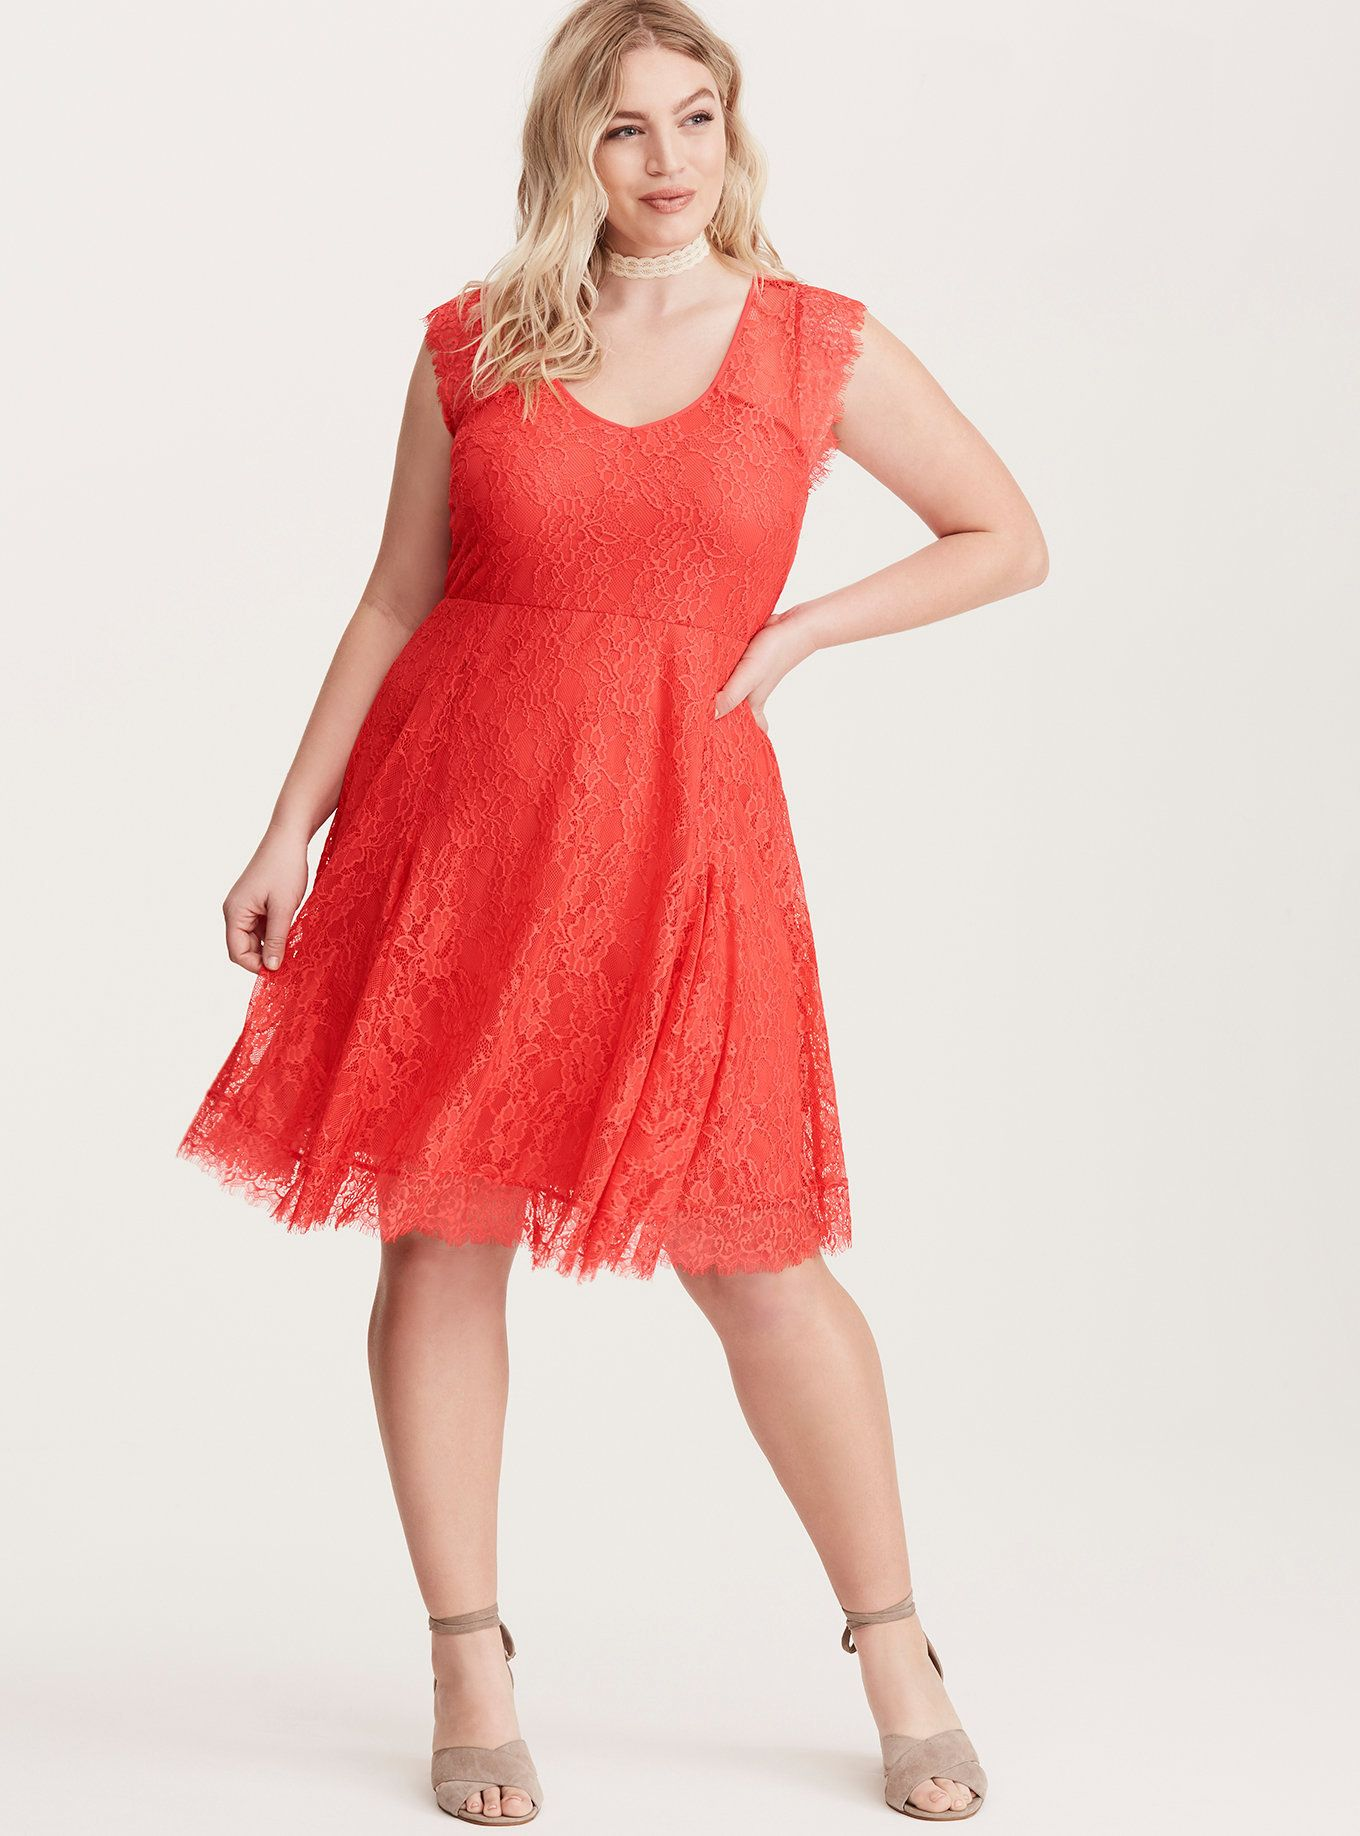 Formal Dresses You Can Wear With Cowboy Boots \u2013 Pemerintah